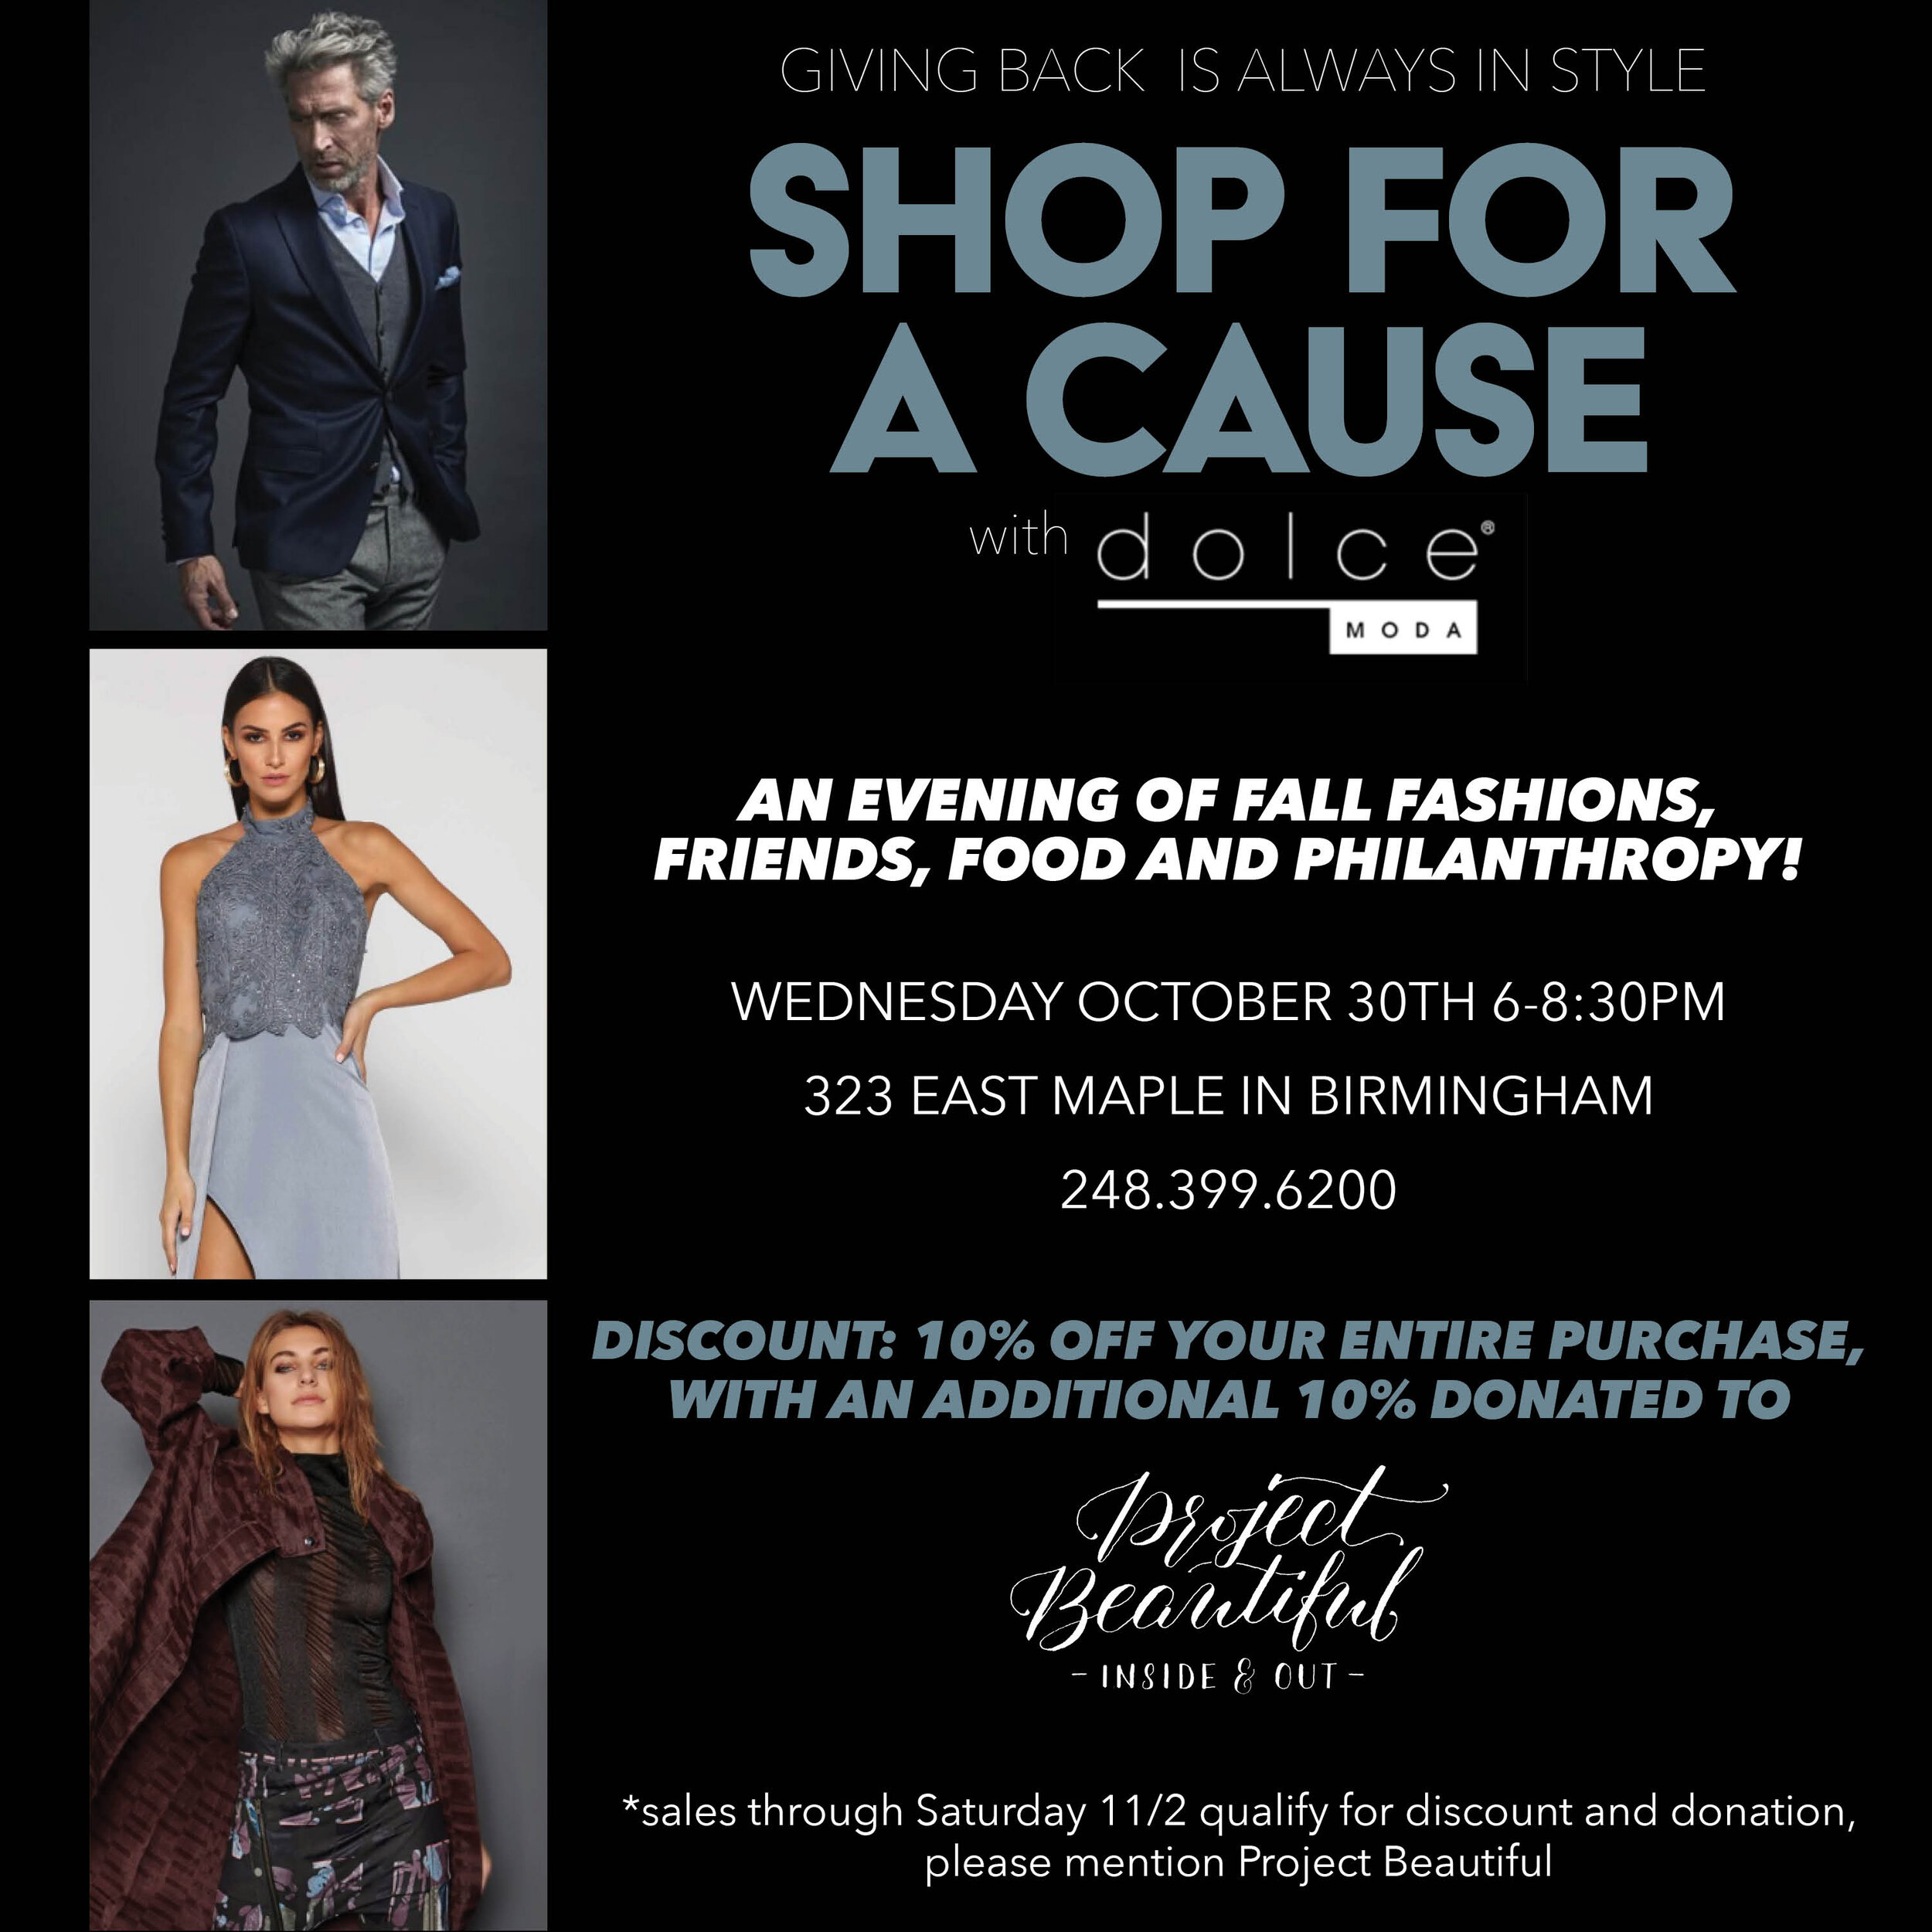 shop for a cause.jpg